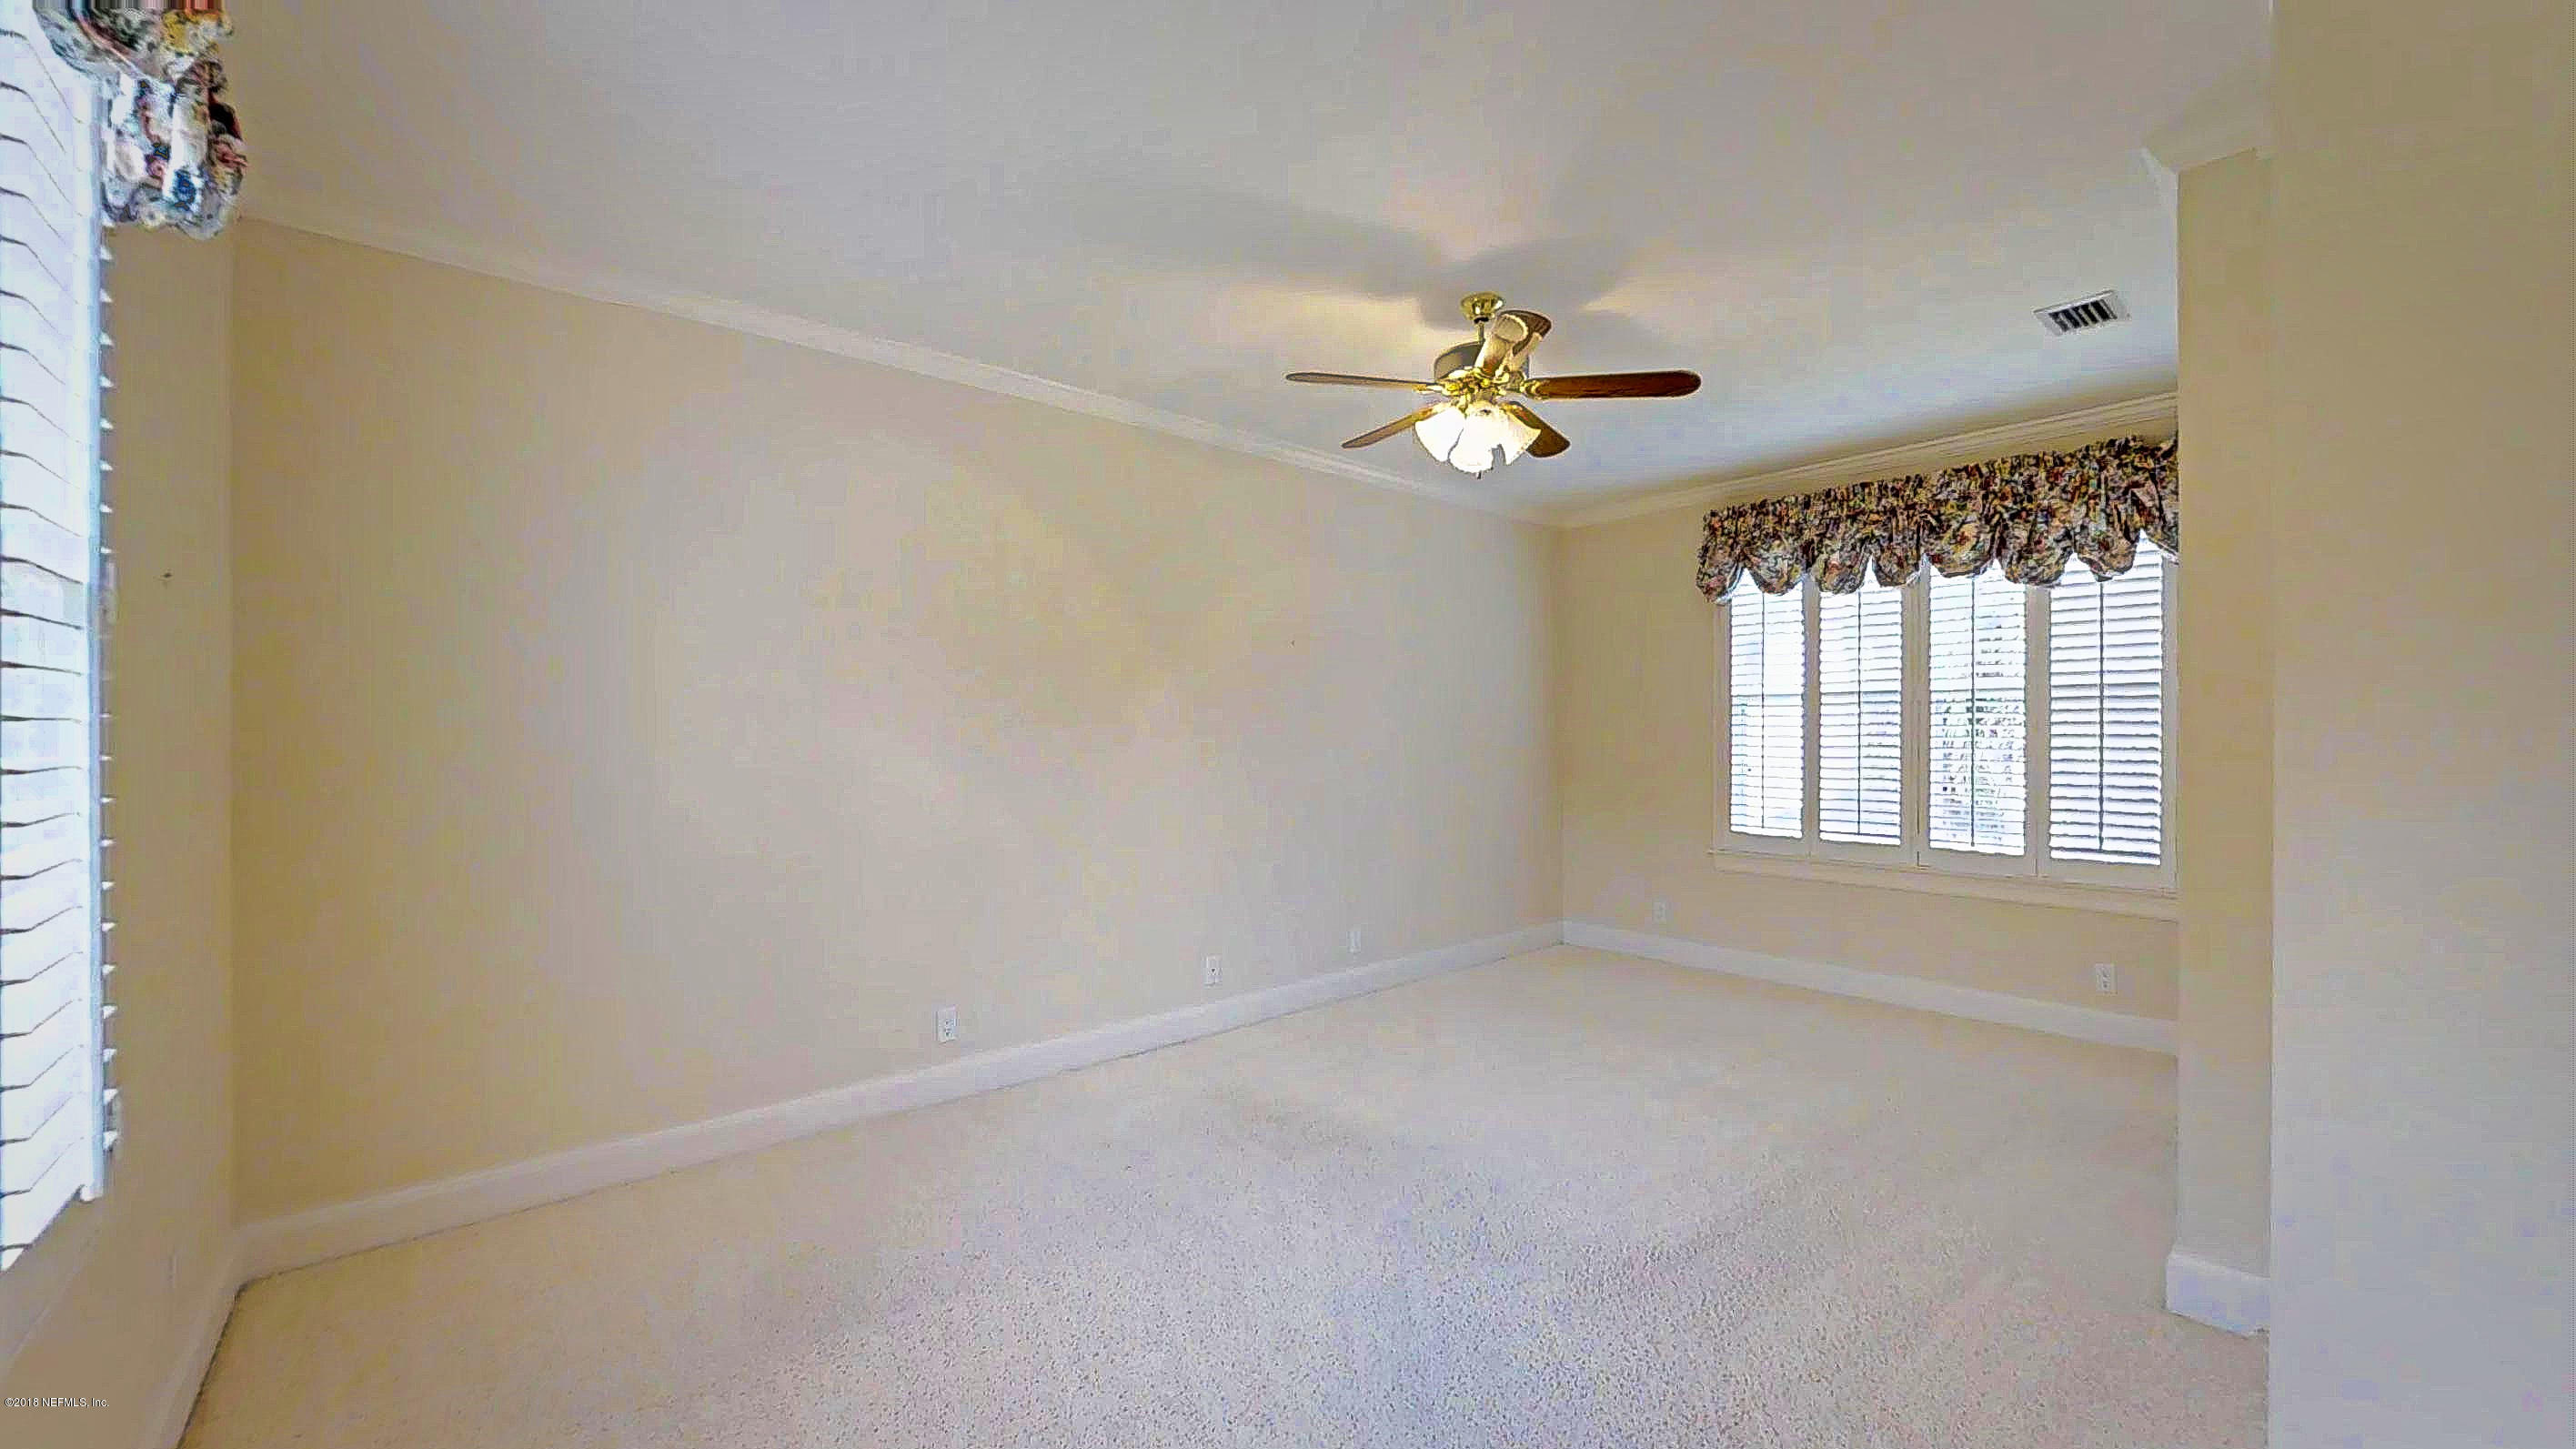 1250 HERON POINT, JACKSONVILLE, FLORIDA 32223, 6 Bedrooms Bedrooms, ,4 BathroomsBathrooms,Residential - single family,For sale,HERON POINT,916276